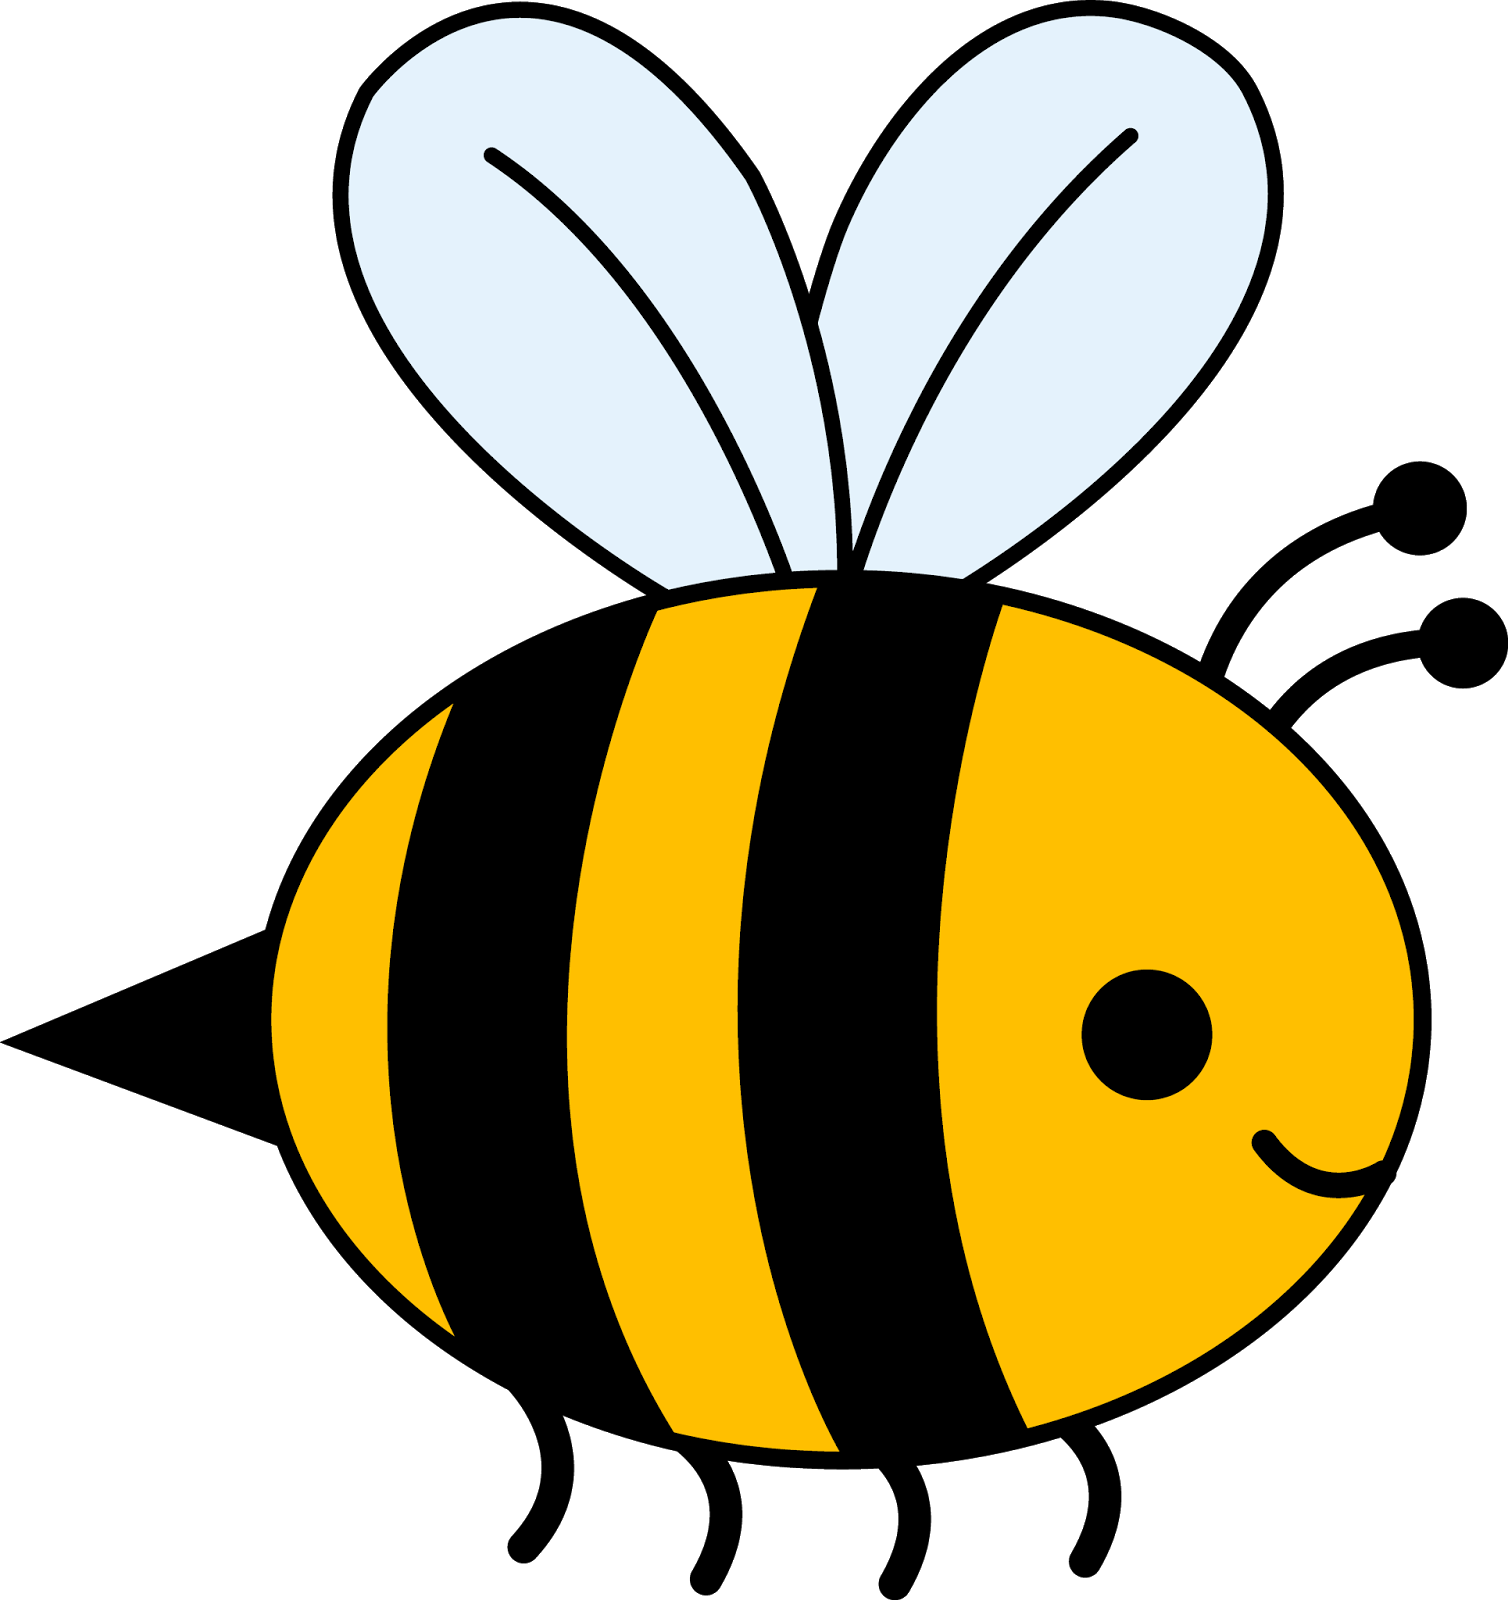 Bee black and white. Lunchbox clipart lunch count